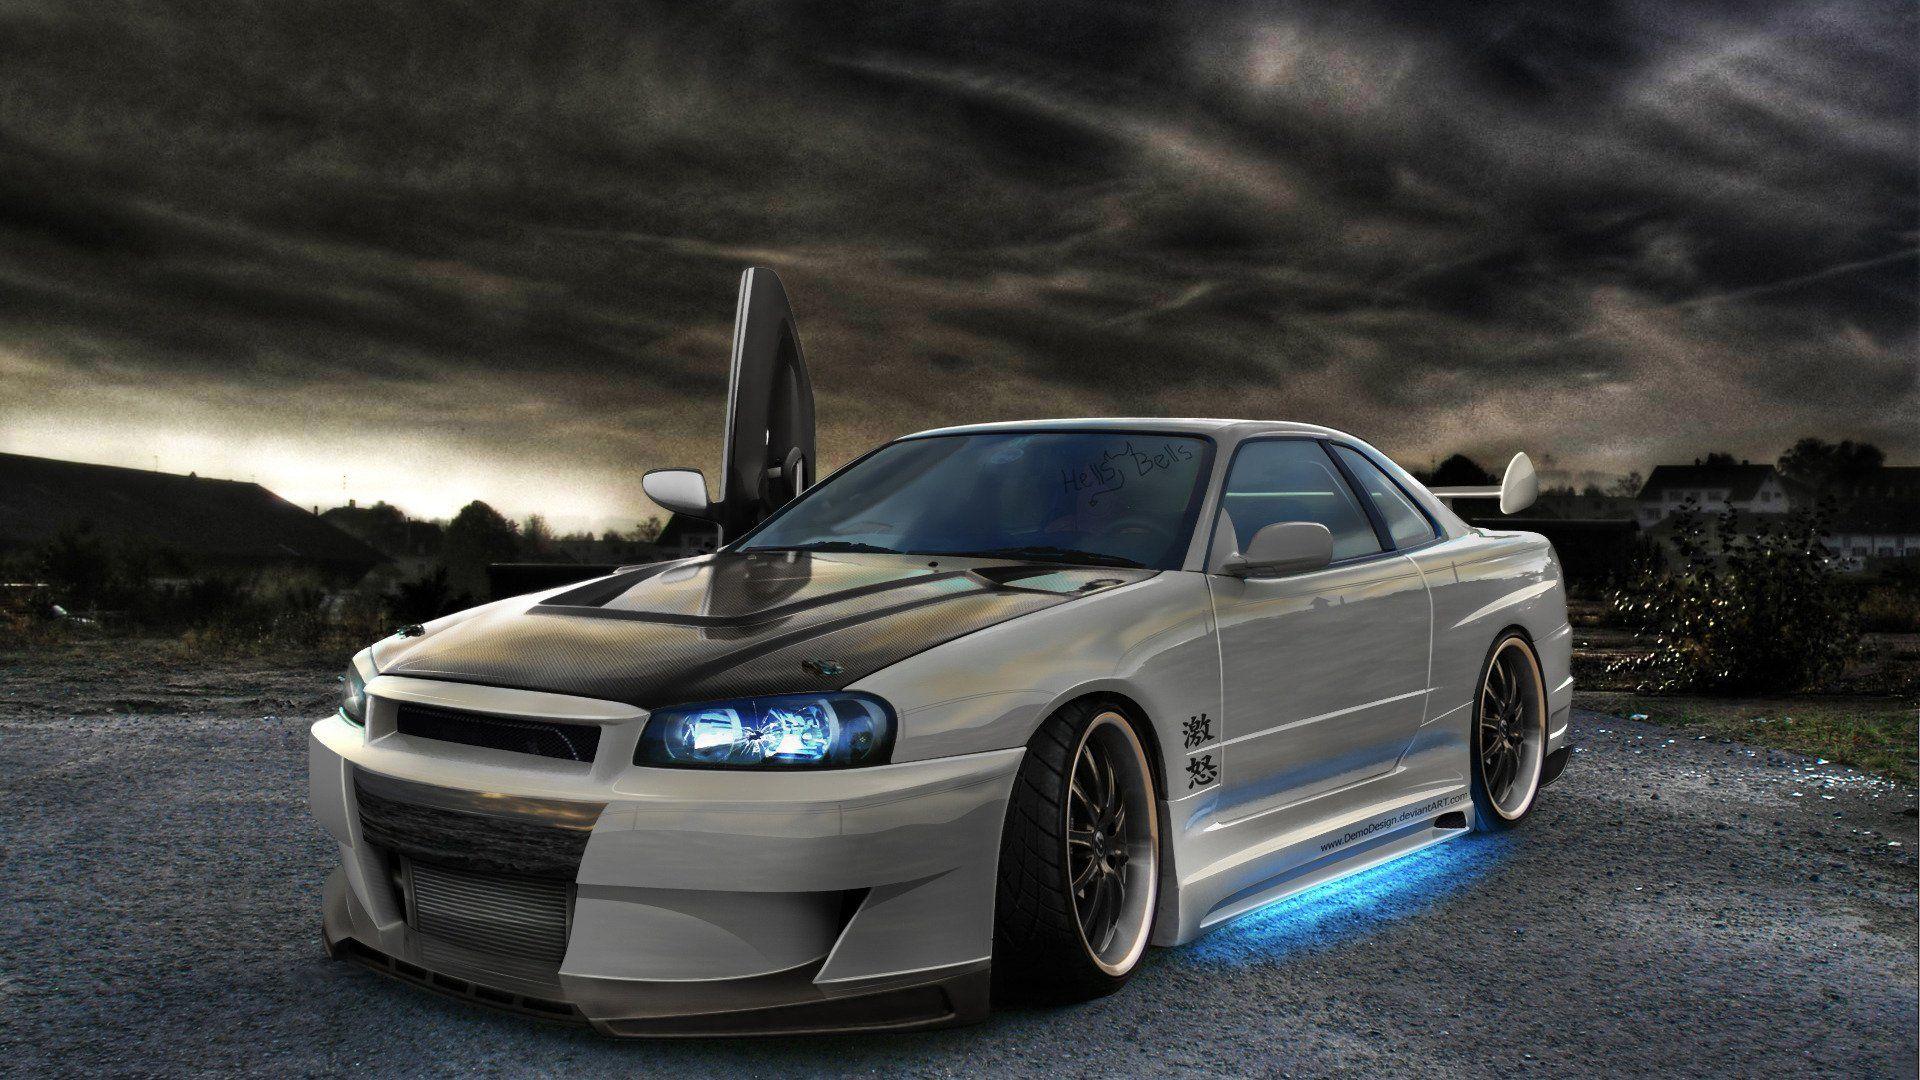 Japanese Used Modified Sports Cars Nissan Skyline R34 Engine 480hp Export  Sales Are Carried Out From Japan. Description From Autospost.com. I Searcu2026